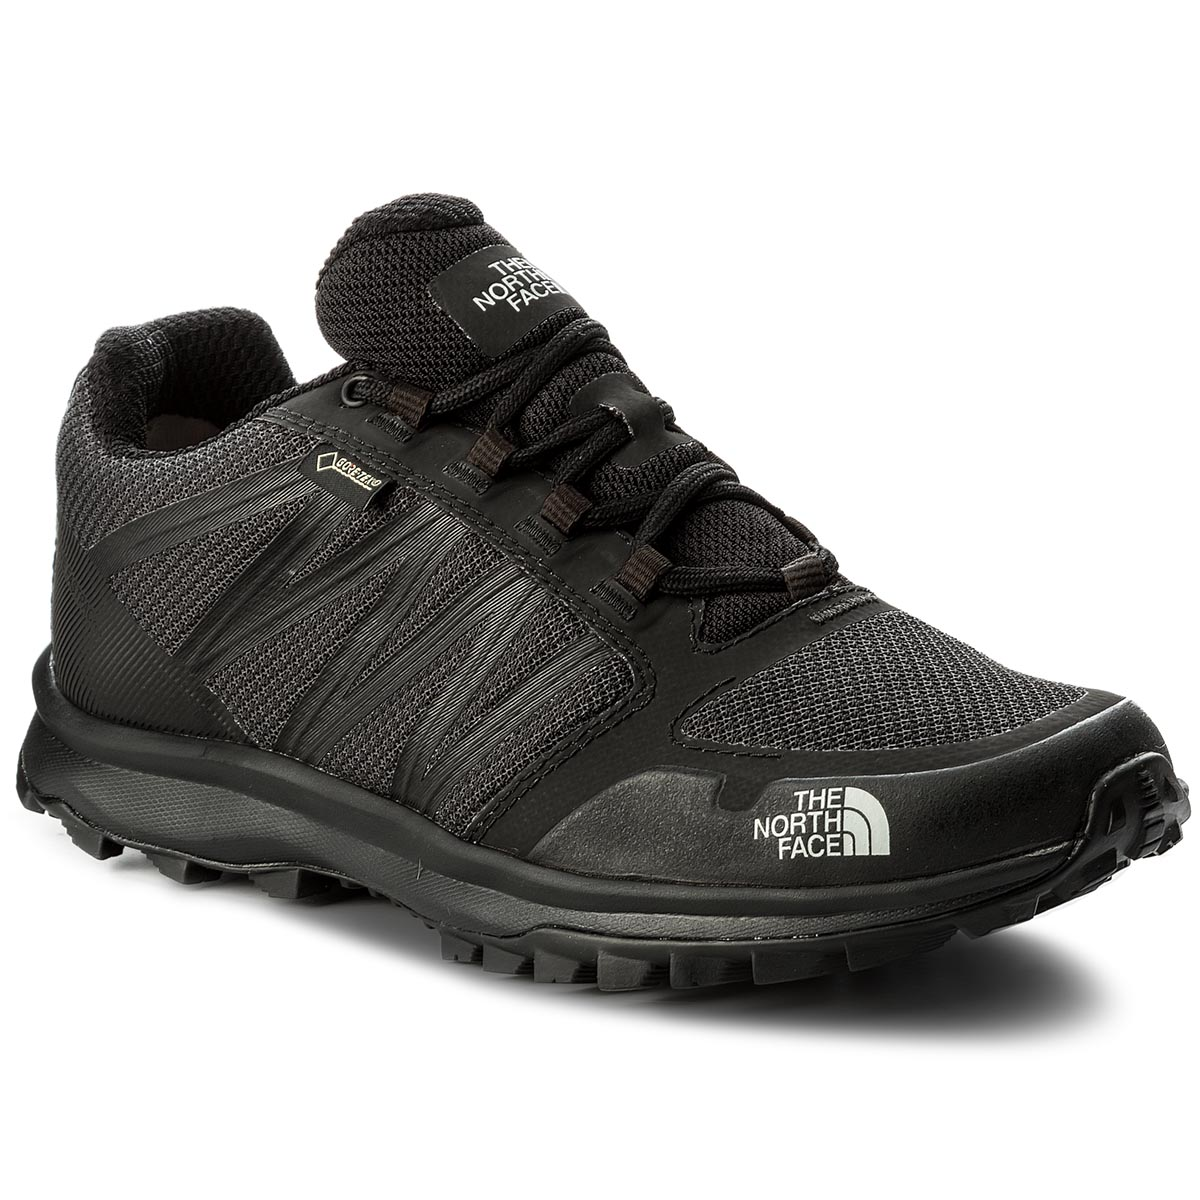 Trekkings THE NORTH FACE - Litewave Fastpack Gtx GORE-TEX T93FX4C4V Tnf Black/High Rise Grey